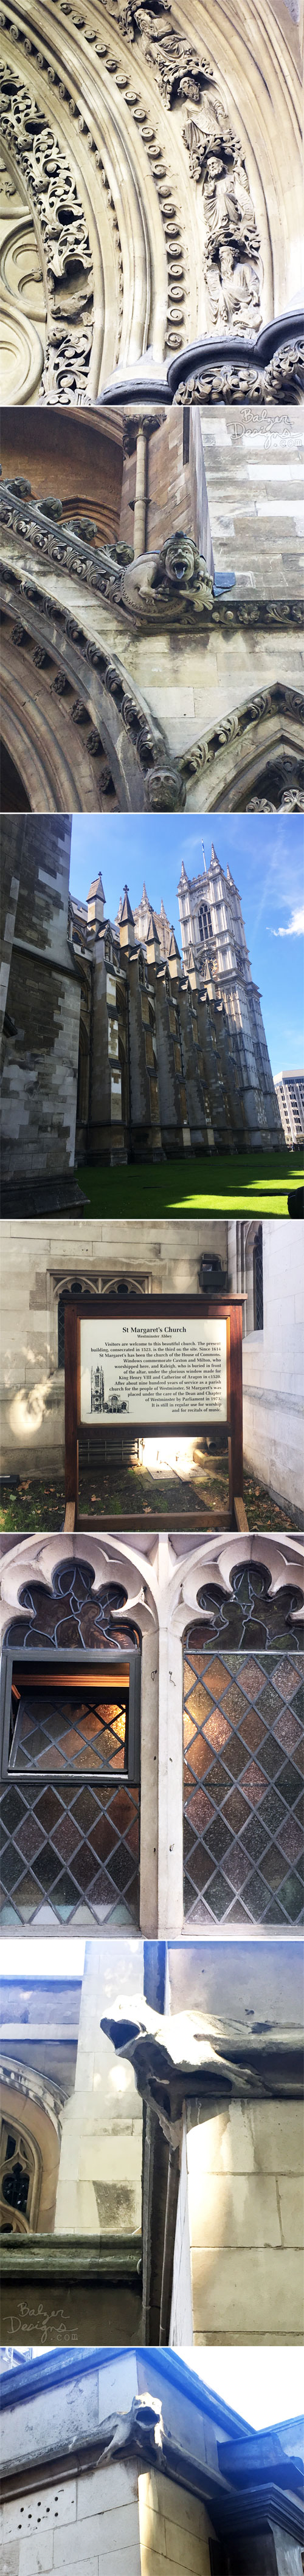 From the Balzer Designs Blog: Tourists in London